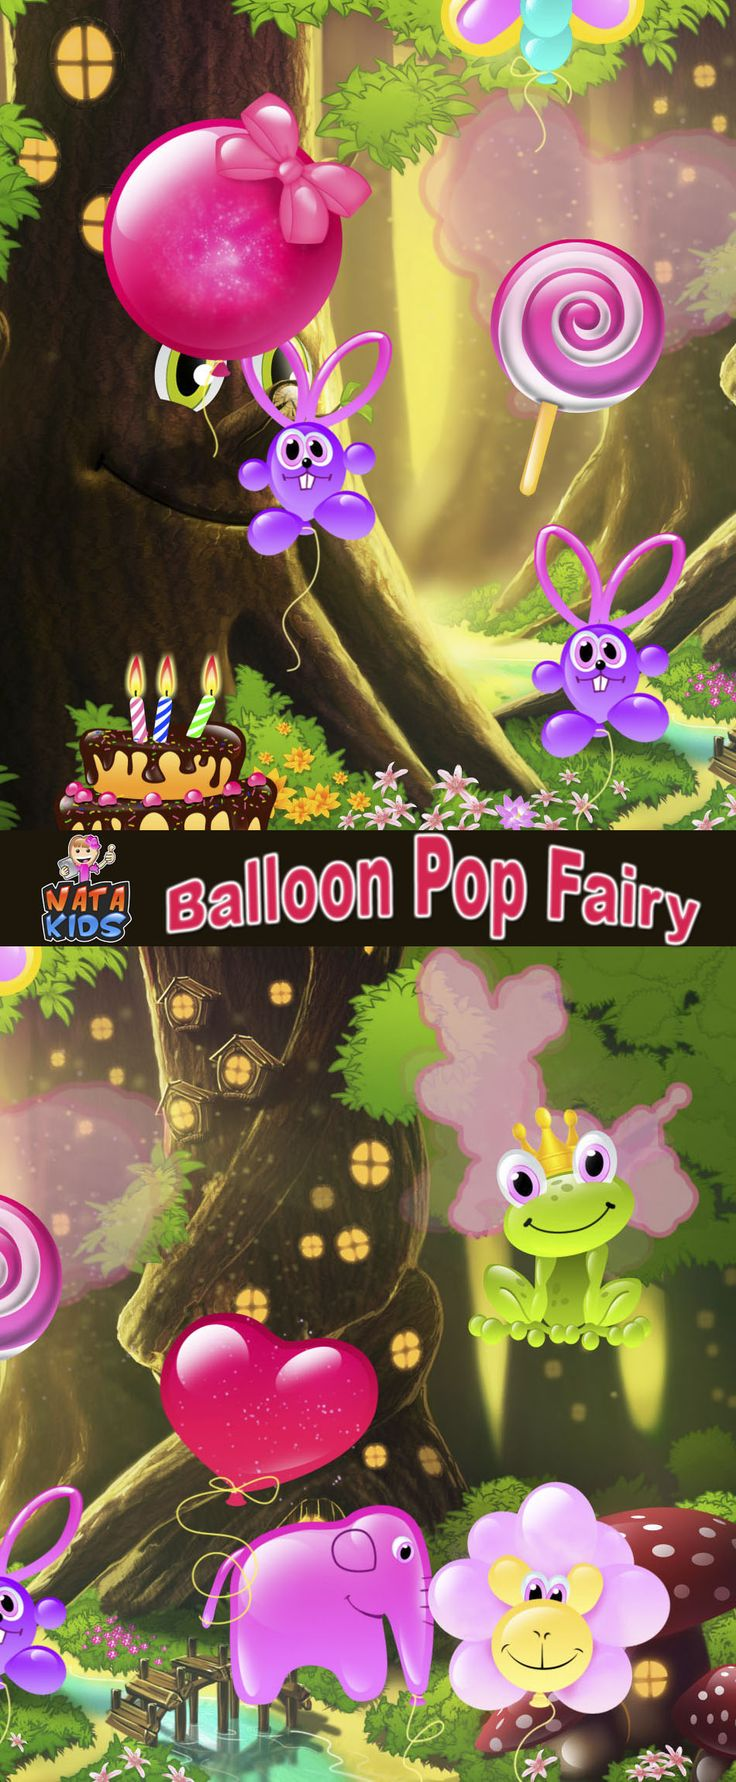 Phone Free Kids Games For Android Phones balloon pop fairy free toddlers game for android phone and devices